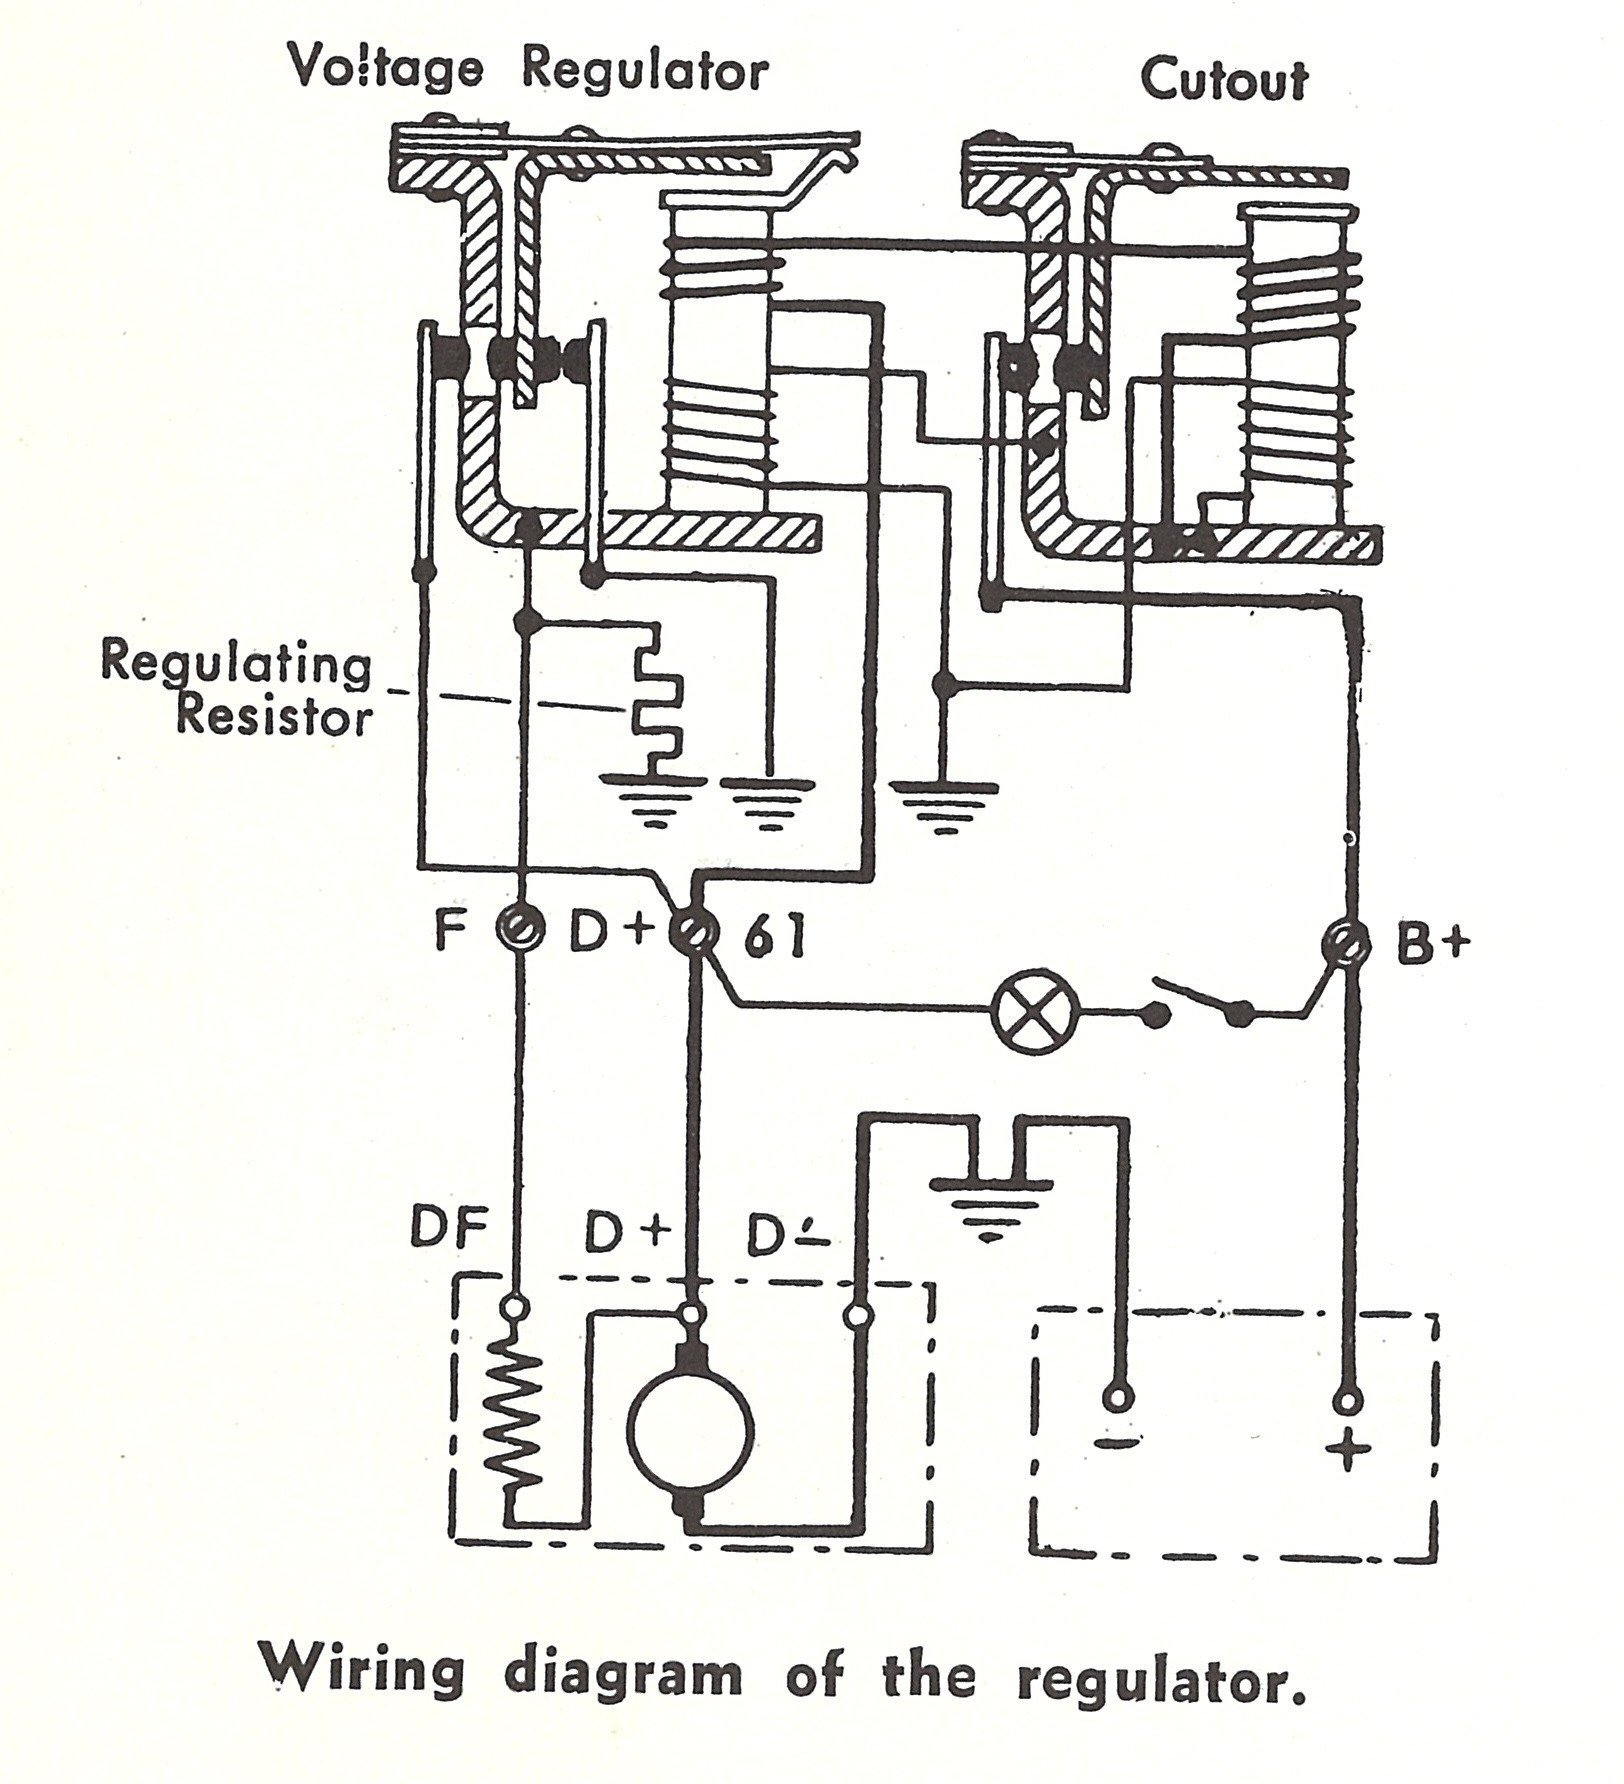 Voltage Regulator Diagram Closeup